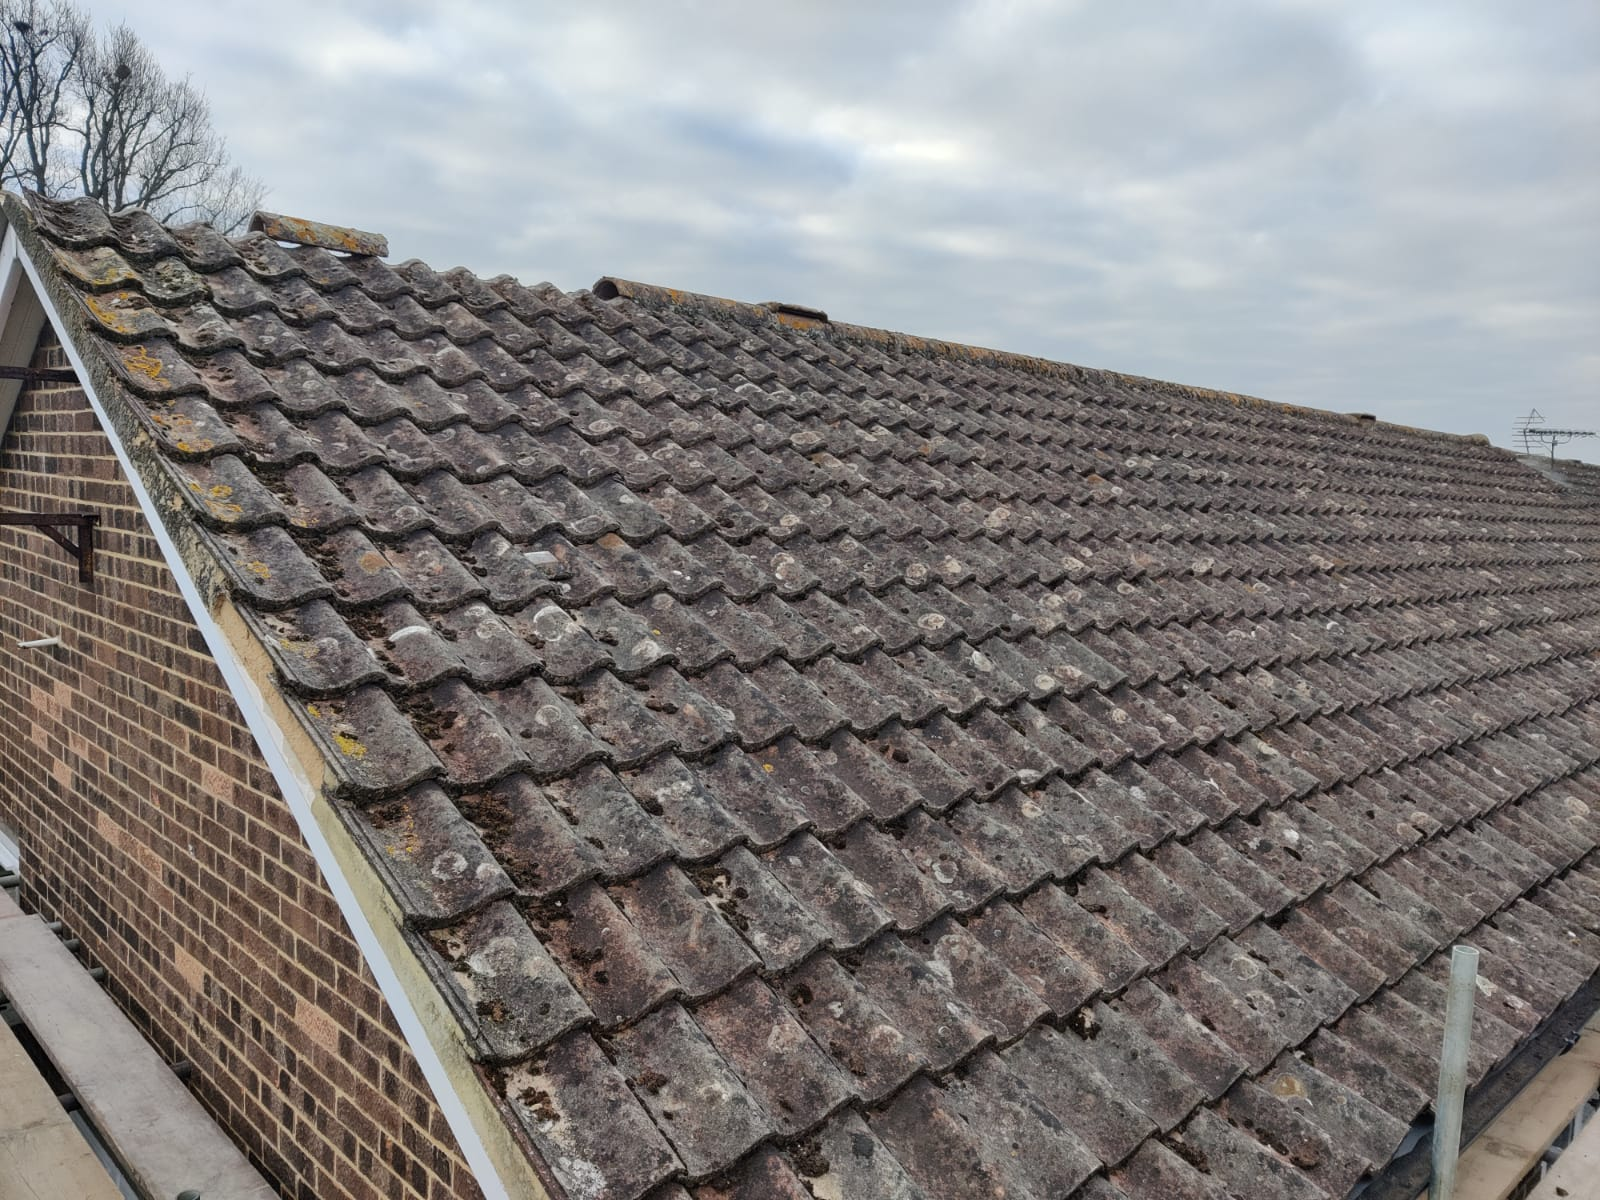 New Batten & Mortar Stripe & Retile Existing Tiles in Horsham by Next Gen Roofing Ltd - Roofing Contractors in Sussex